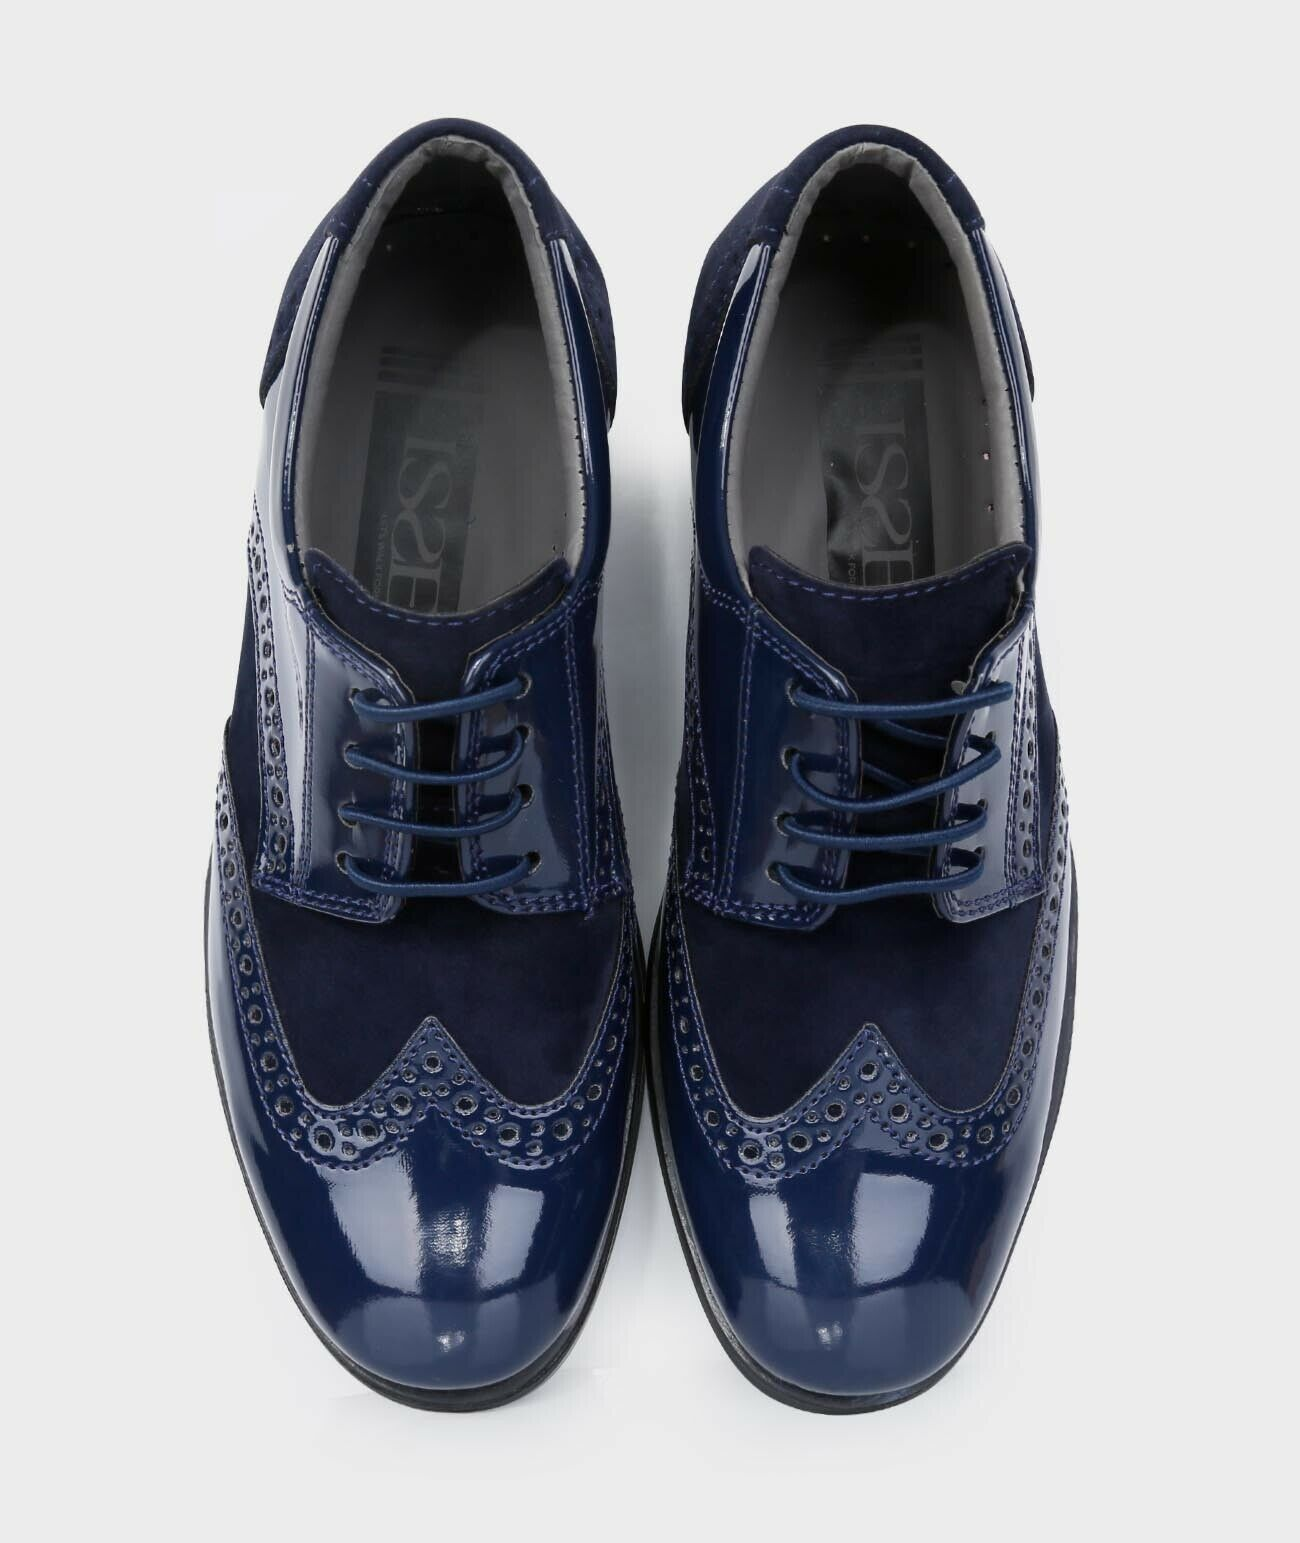 Boys Formal Navy Blue Suede Patent Weddings Page Boy Prom Brogue Shoes Ebay